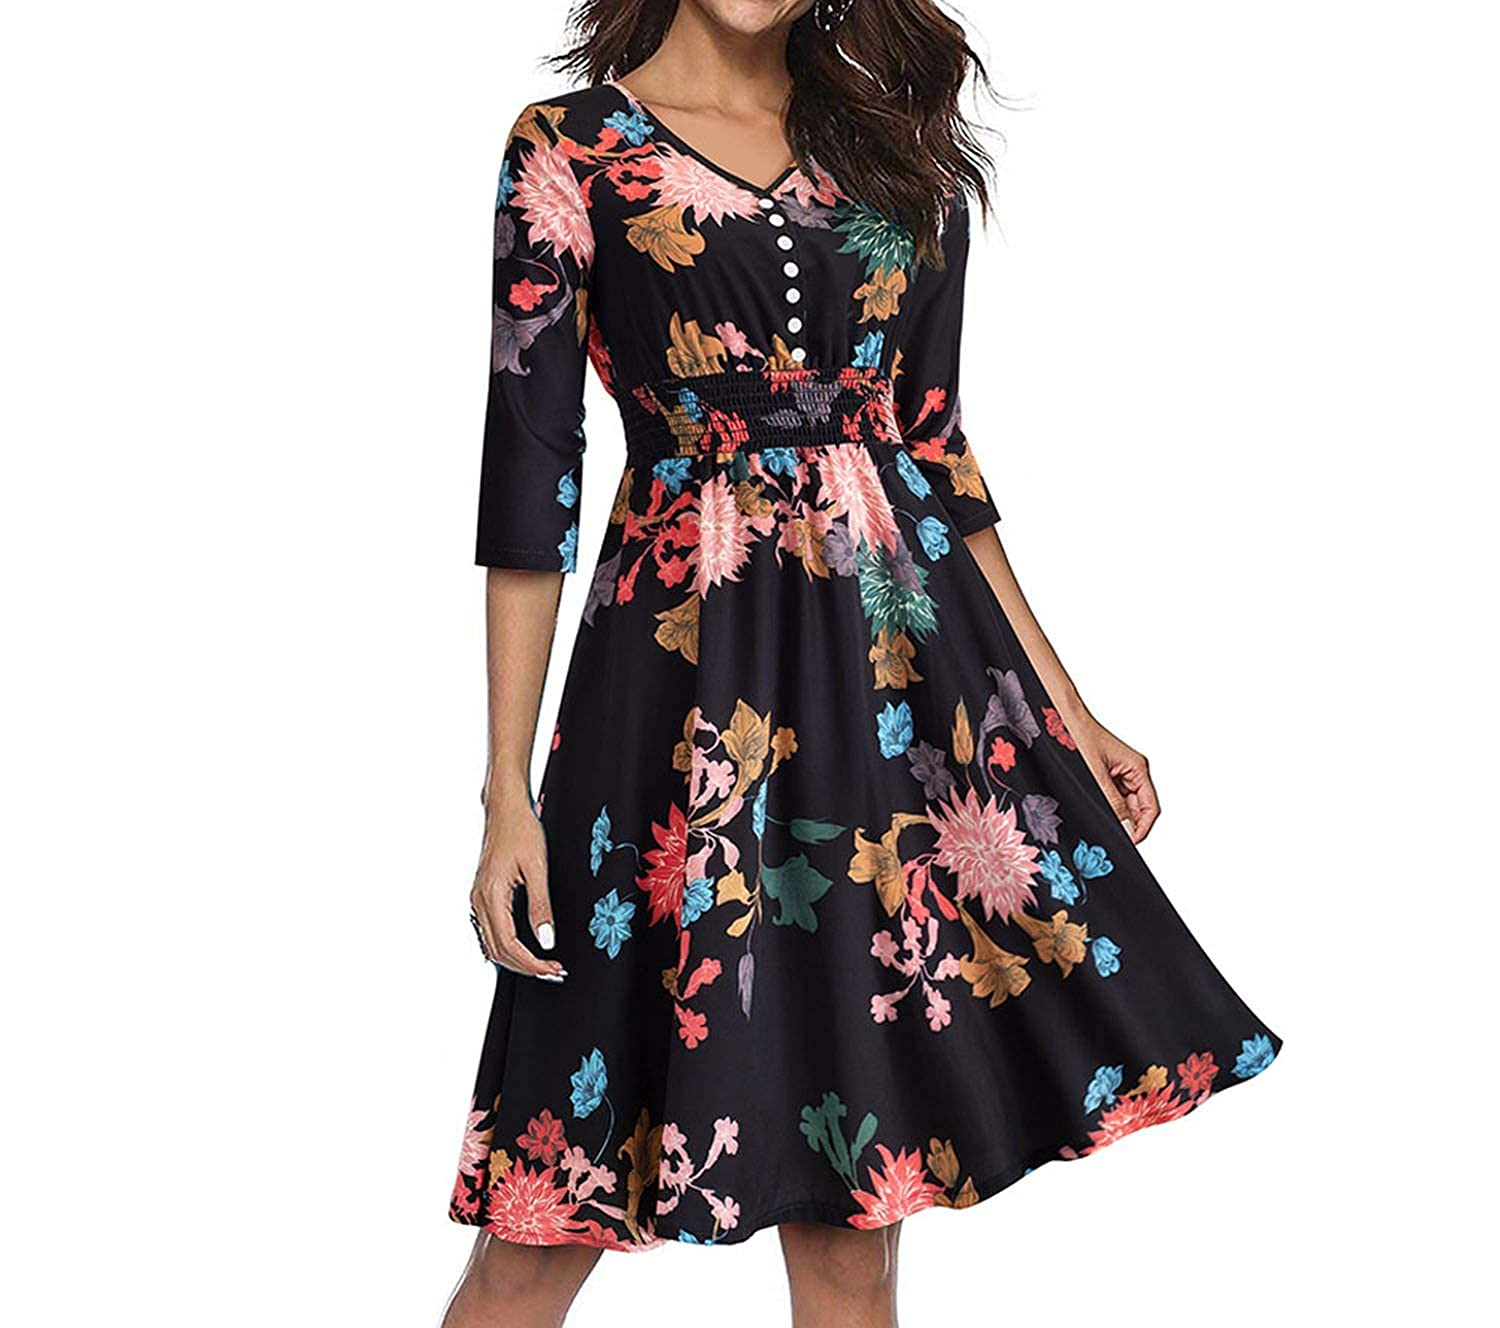 Black Small Printed Flower Pinup Elastic Waist Vestidos ALine Business Party Flare Swing Autumn Dress A122